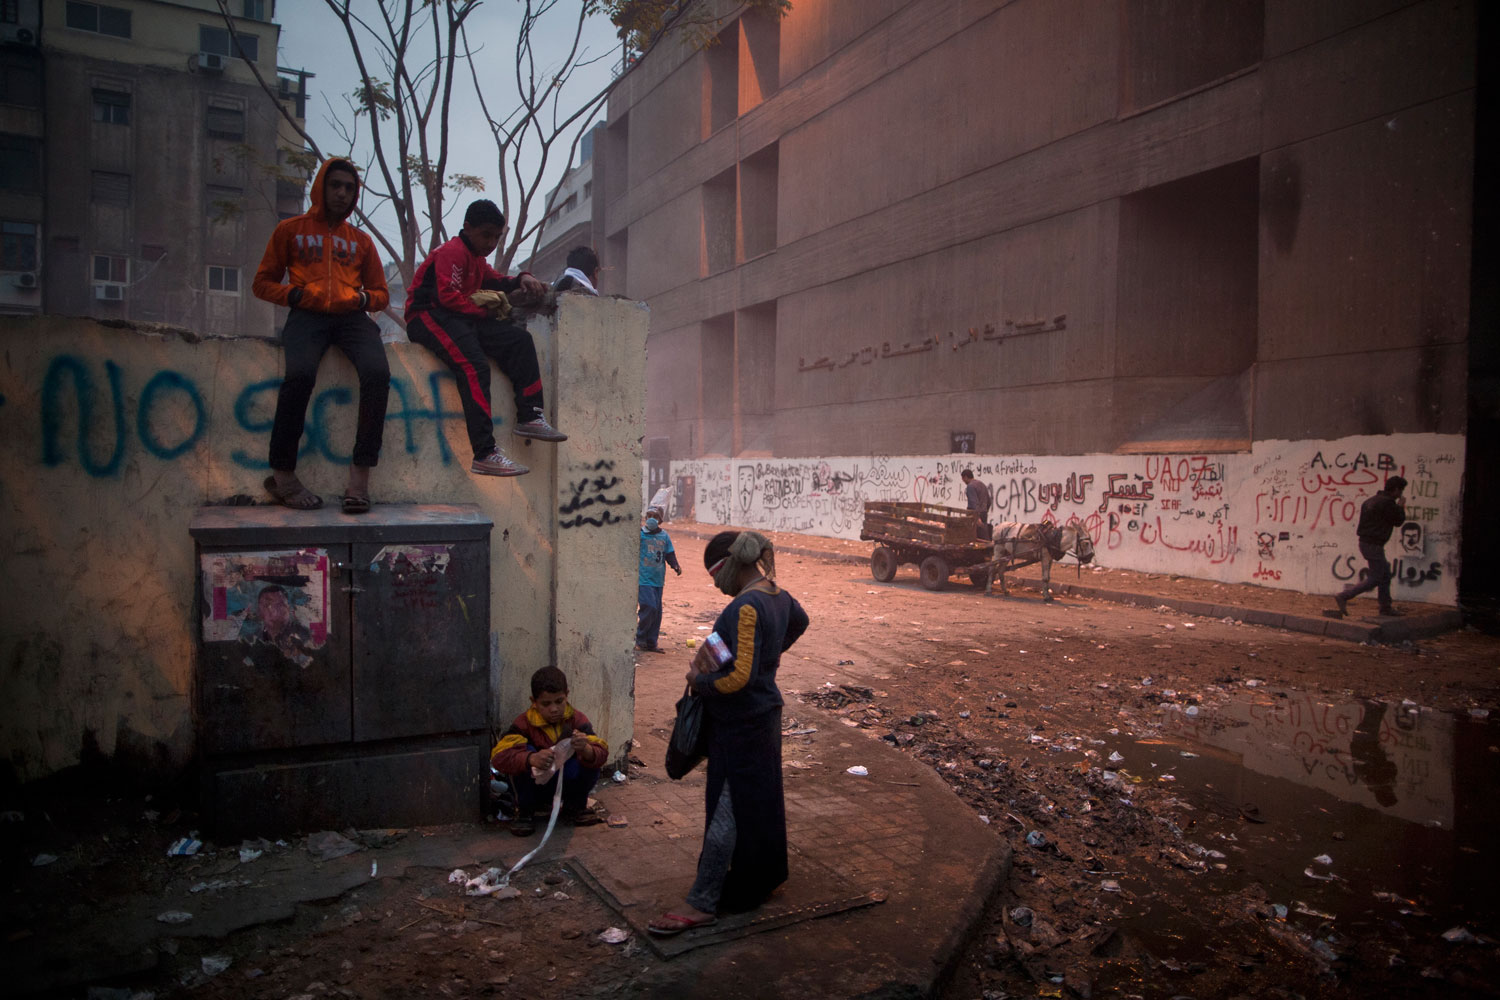 The following photographs were taken in Cairo in February 2012.Egyptian children hang around following street clashes on Mohamed Mahmoud street next to Tahrir Square.